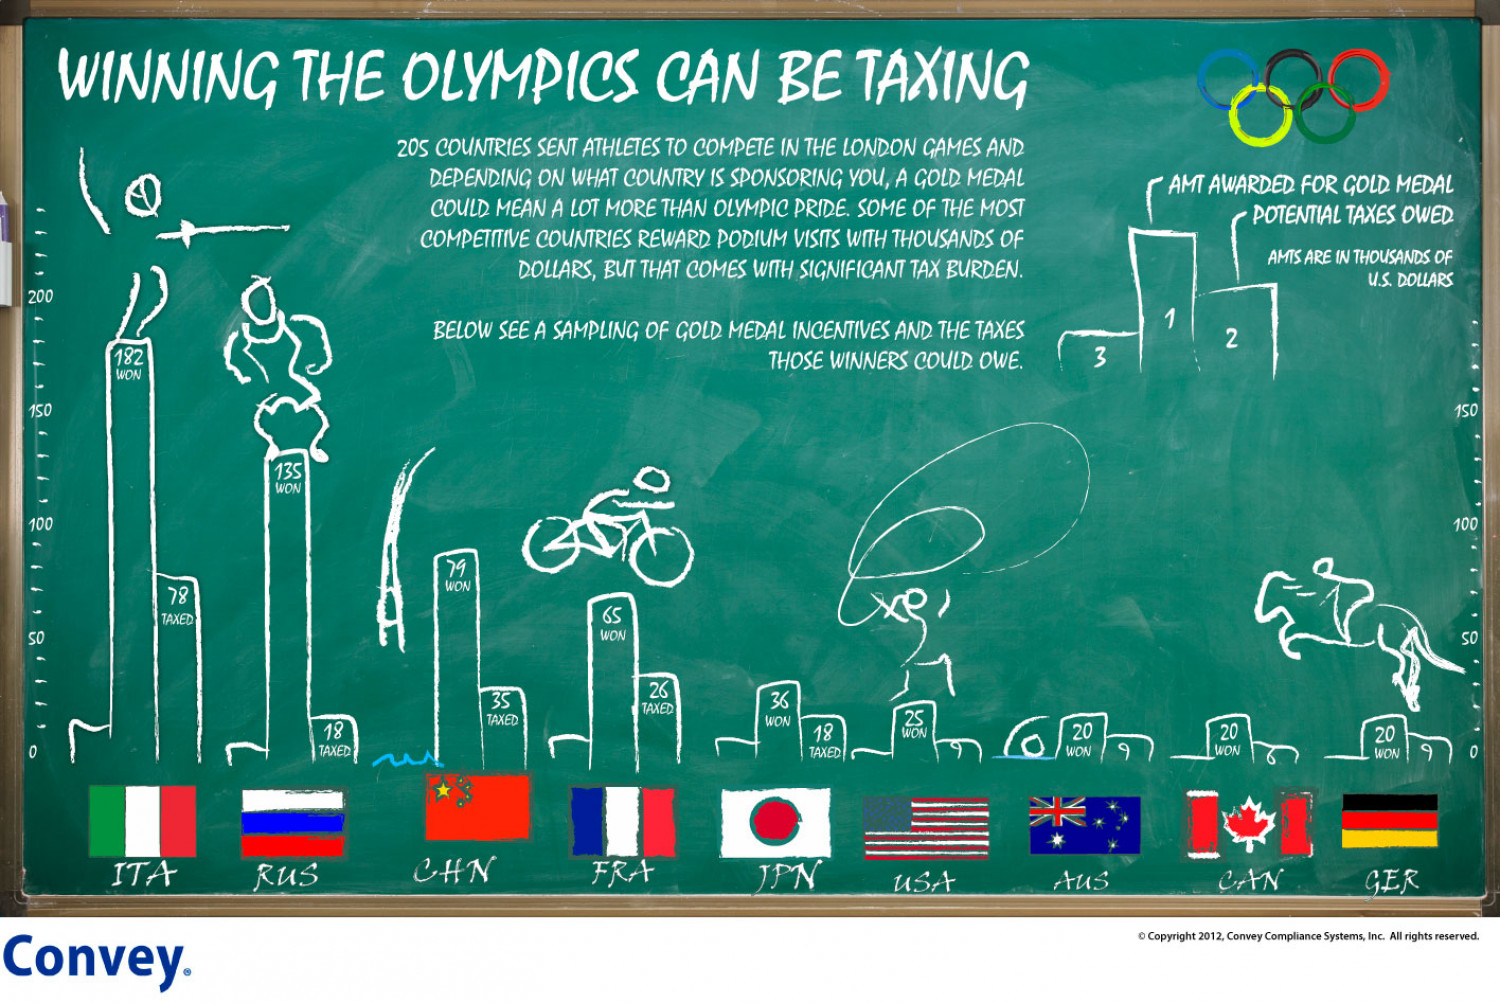 Winning the Olympics Can Be Taxing Infographic